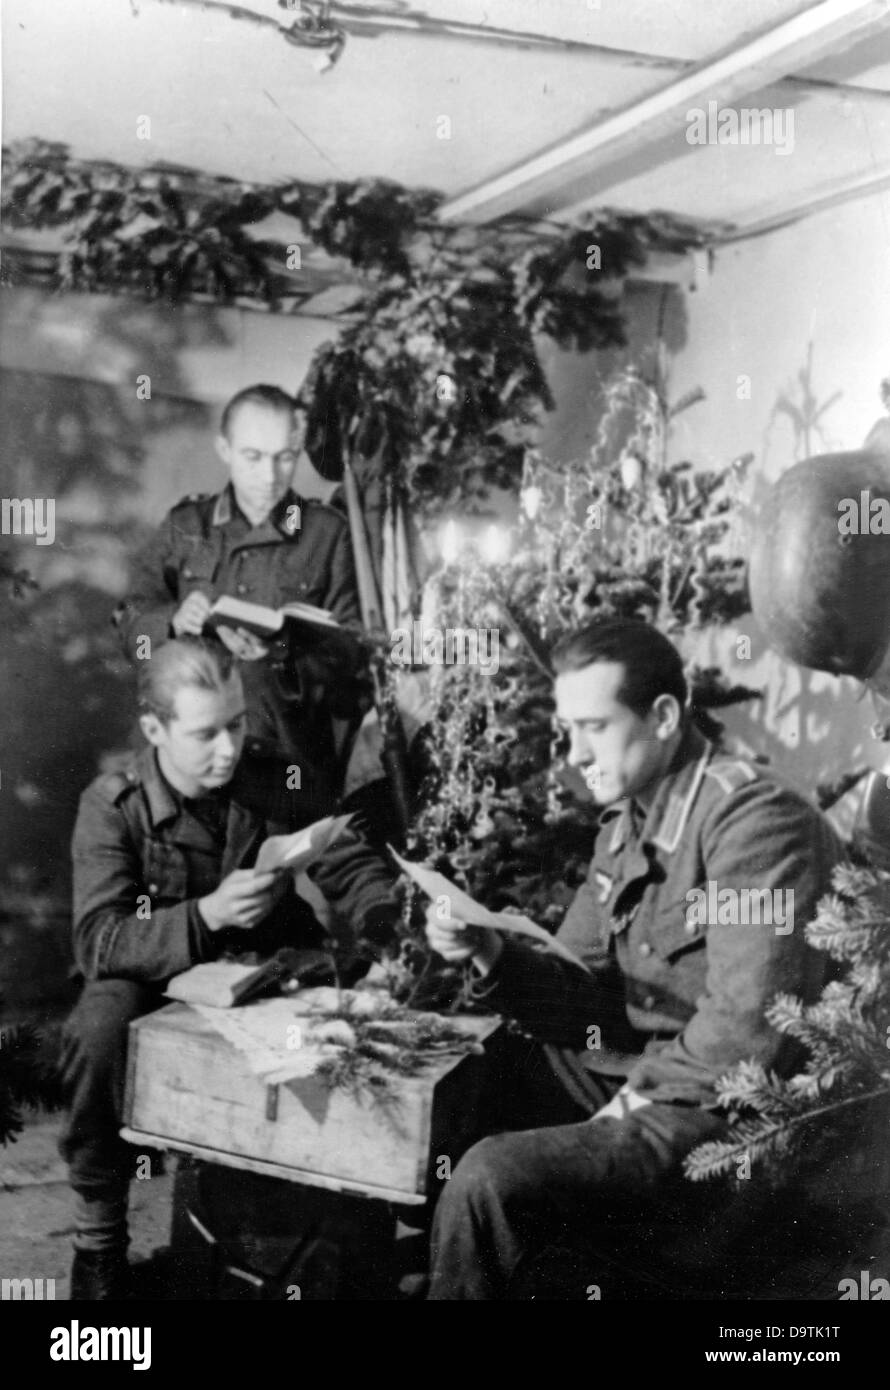 The soldiers of the German Wehrmacht read letters in a bunker on the Eastern Front on Christmas 1944. The Nazi Propaganda! Stock Photo